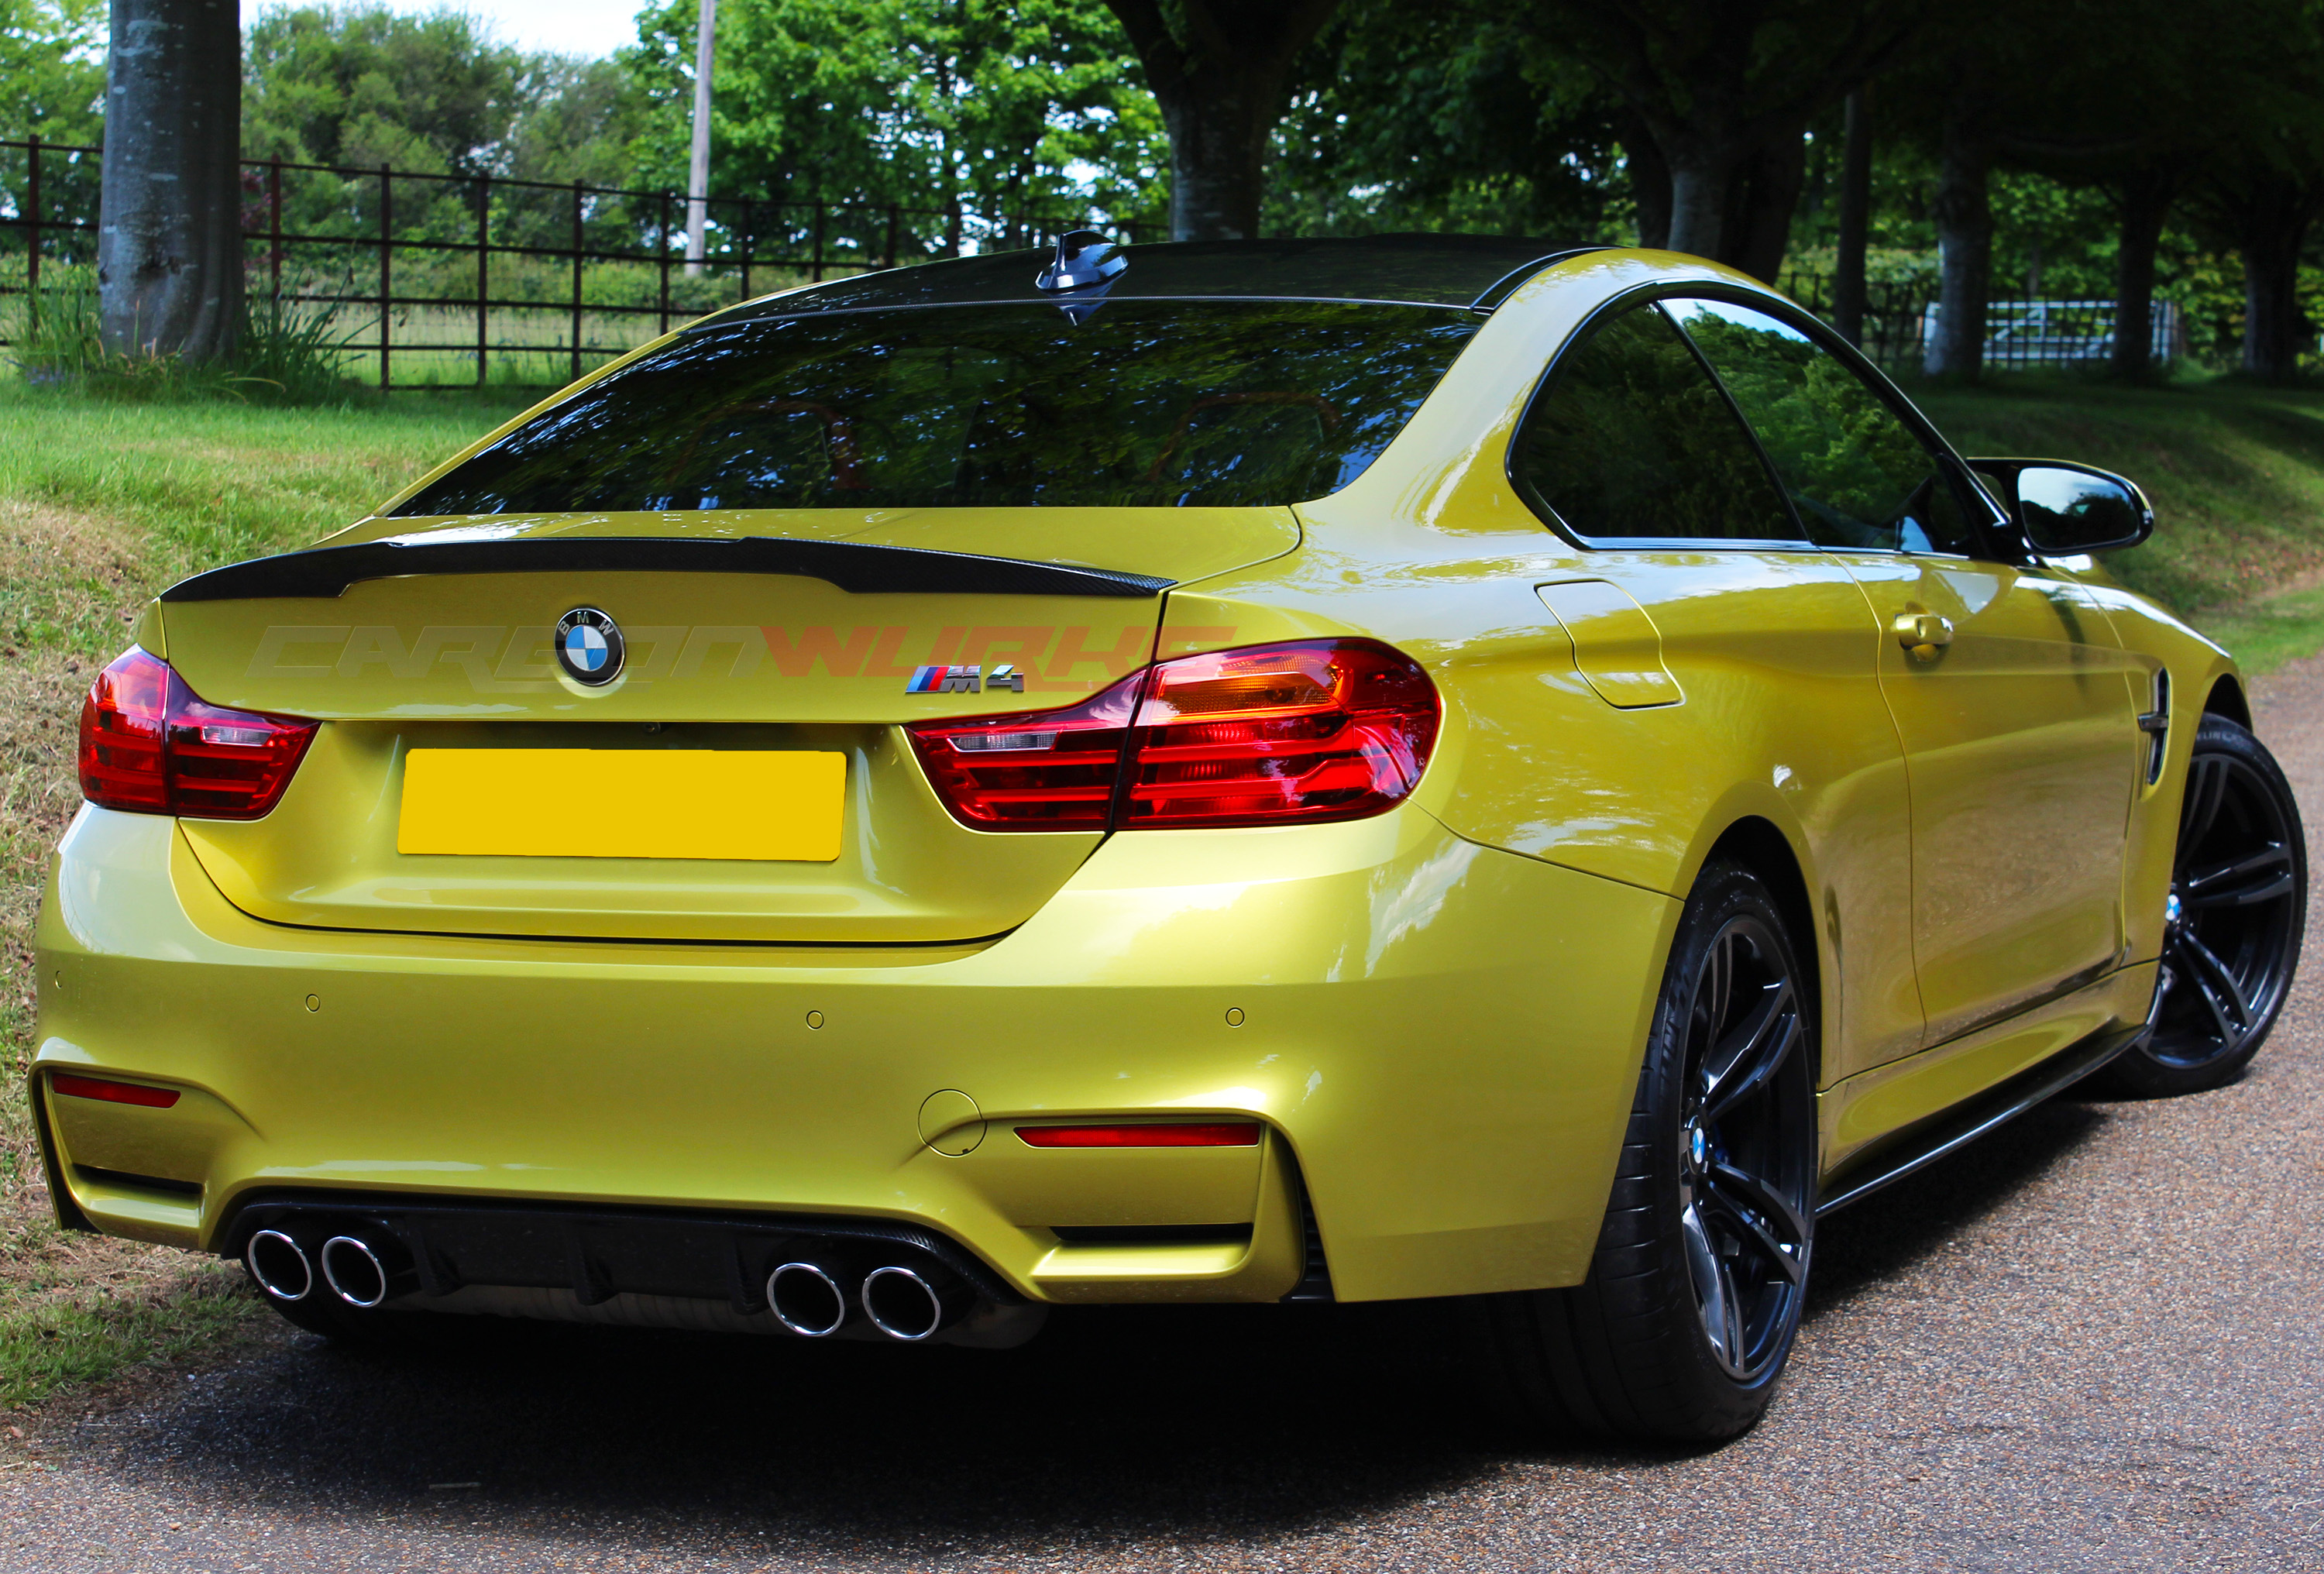 Carbonwurks Custom Carbon Fibrebmw M4 Coupe Carbon Fibre Rear Spoiler Carbonwurks Custom